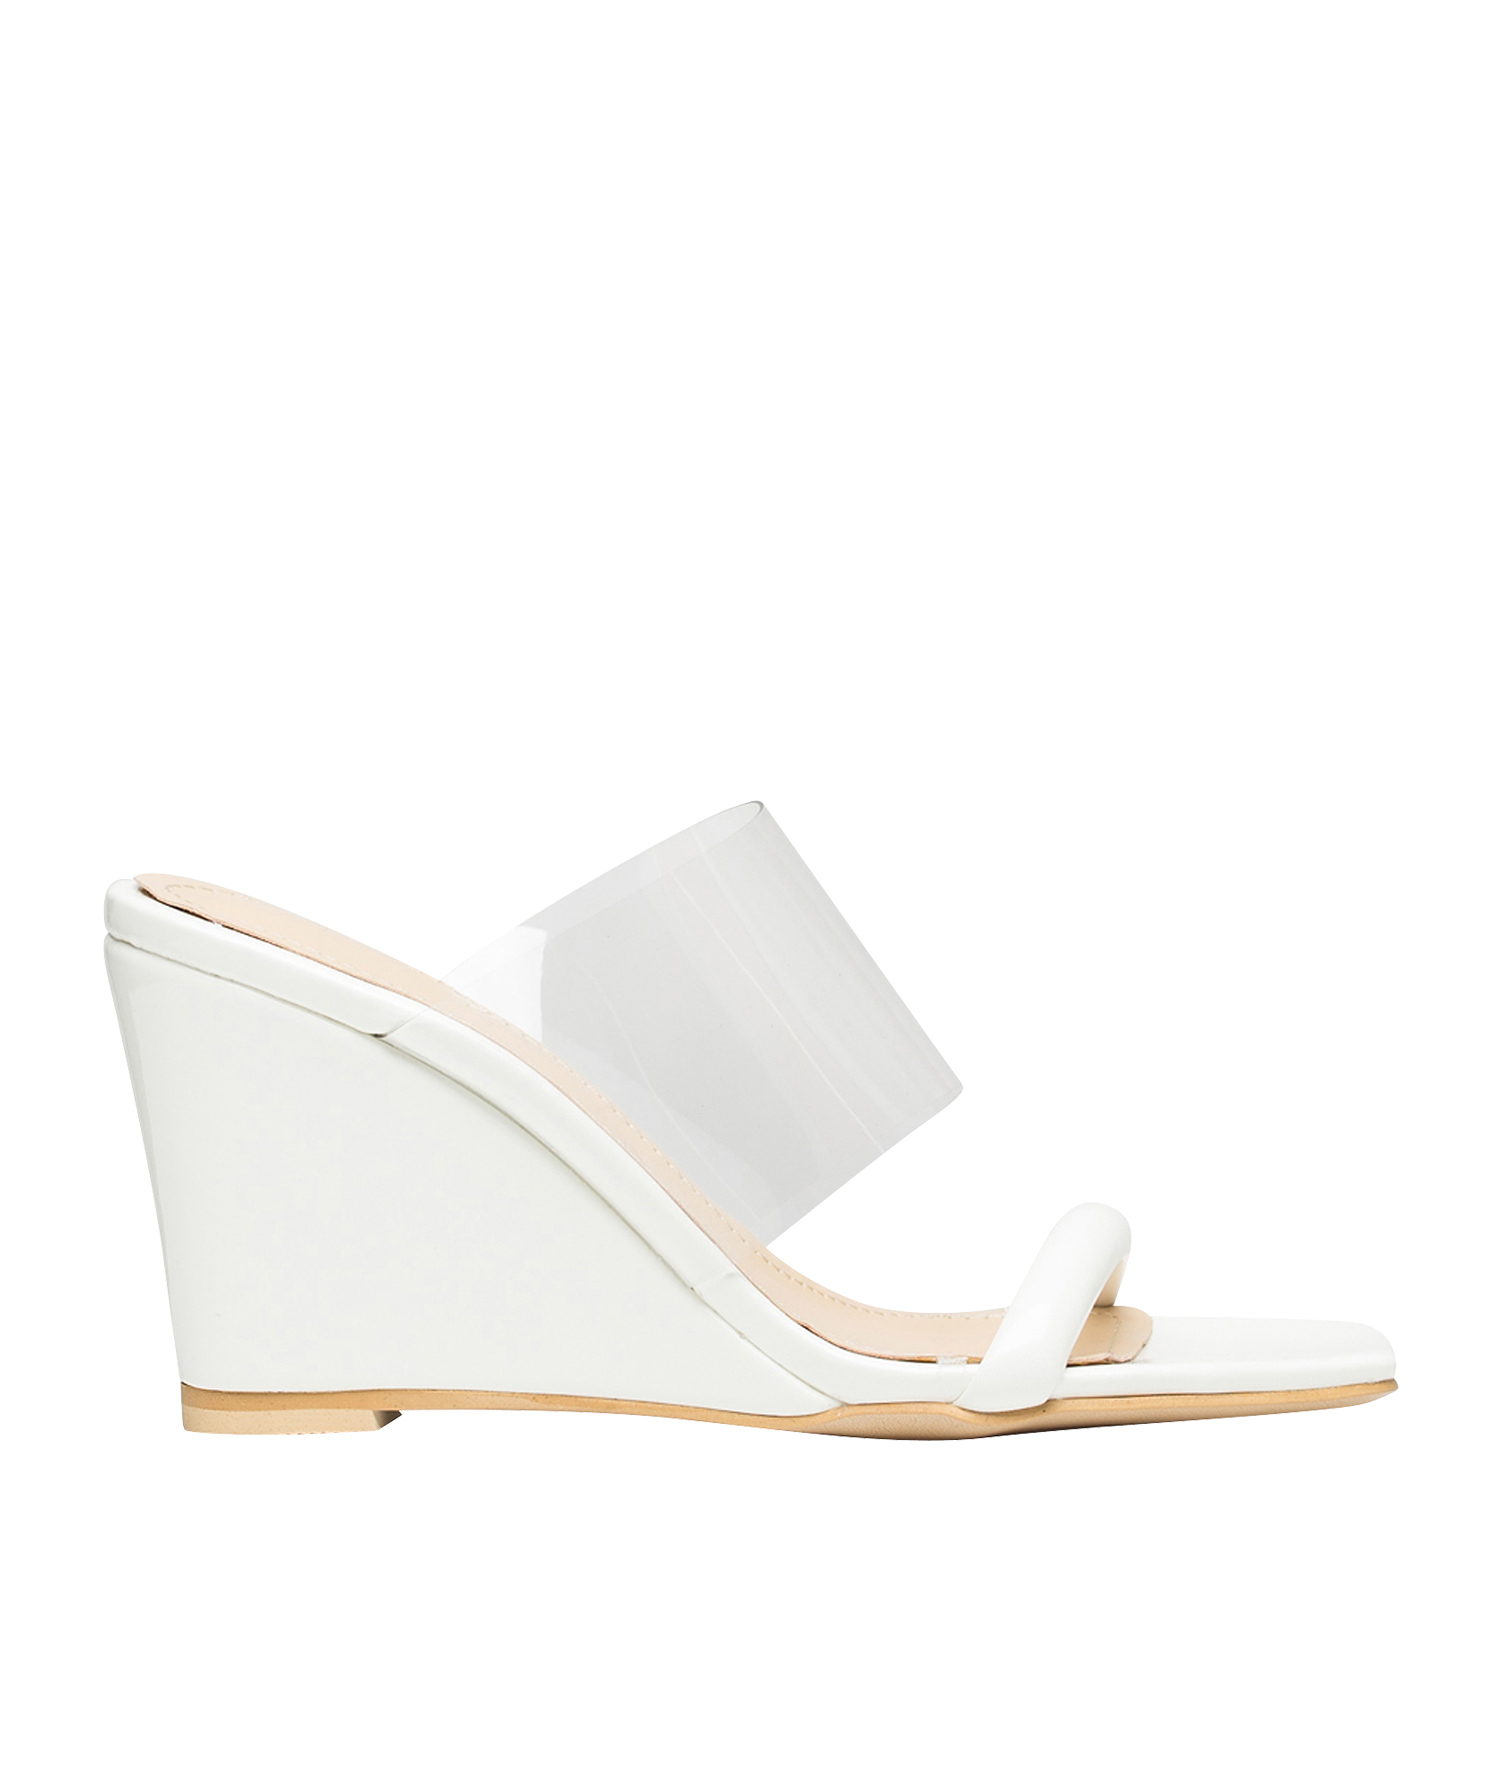 7b73d93cc AnnaKastle womens color accent transparent wedge heel mule sandals white